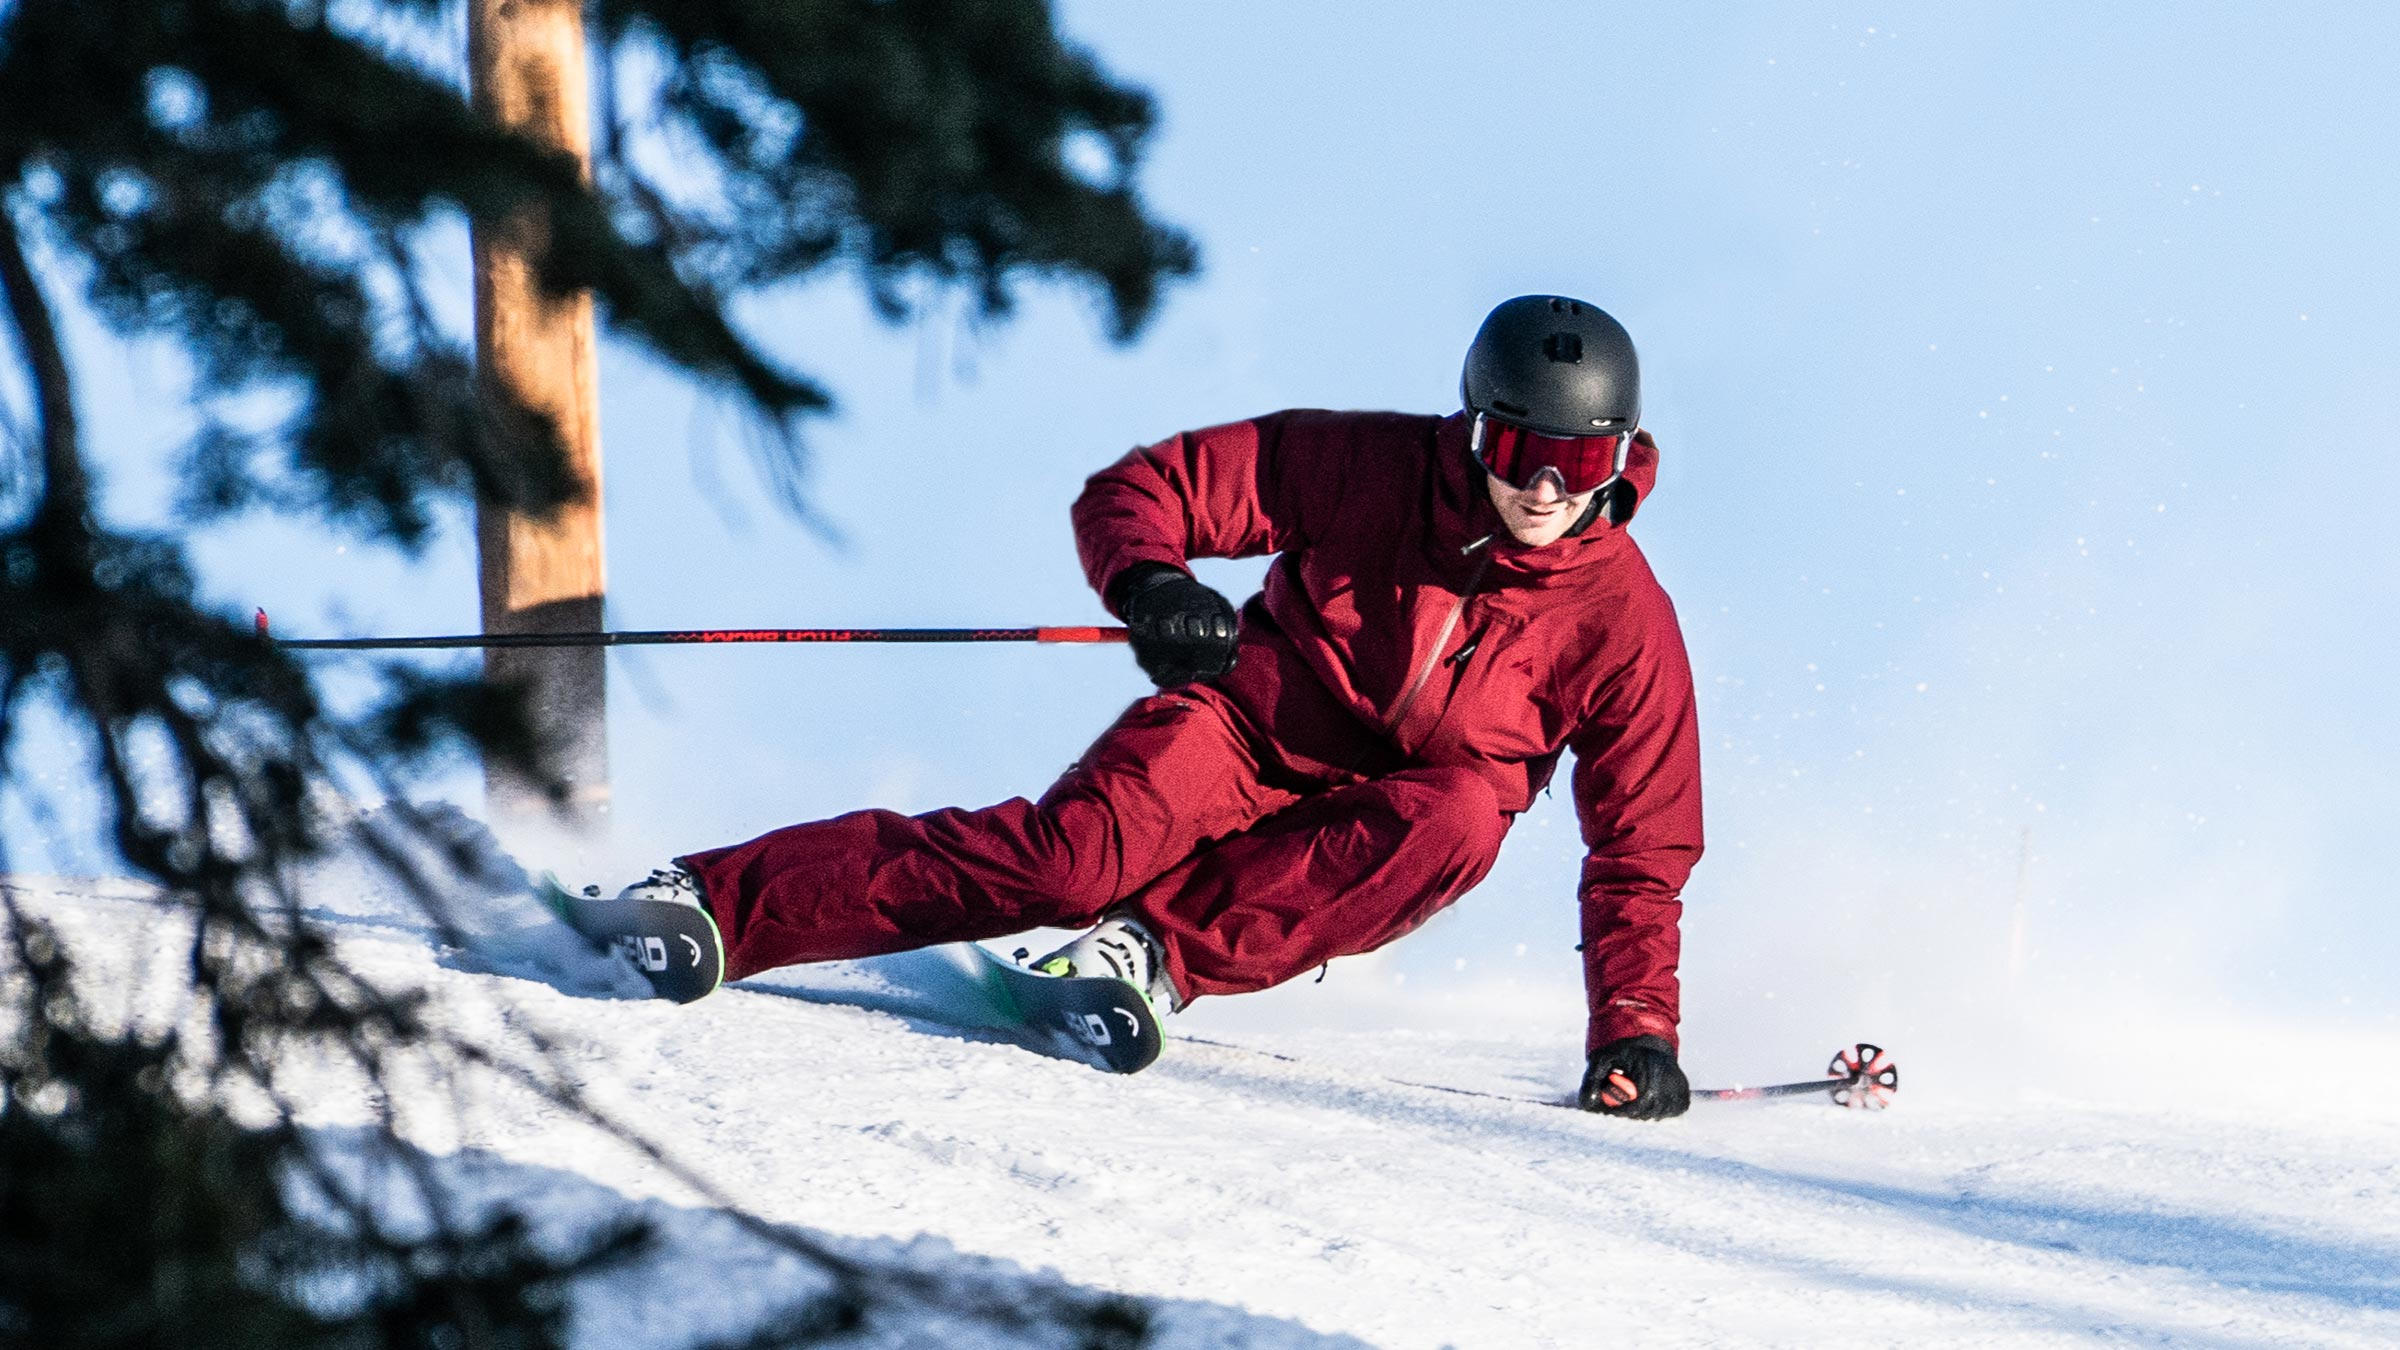 skier carving in ozone jacket